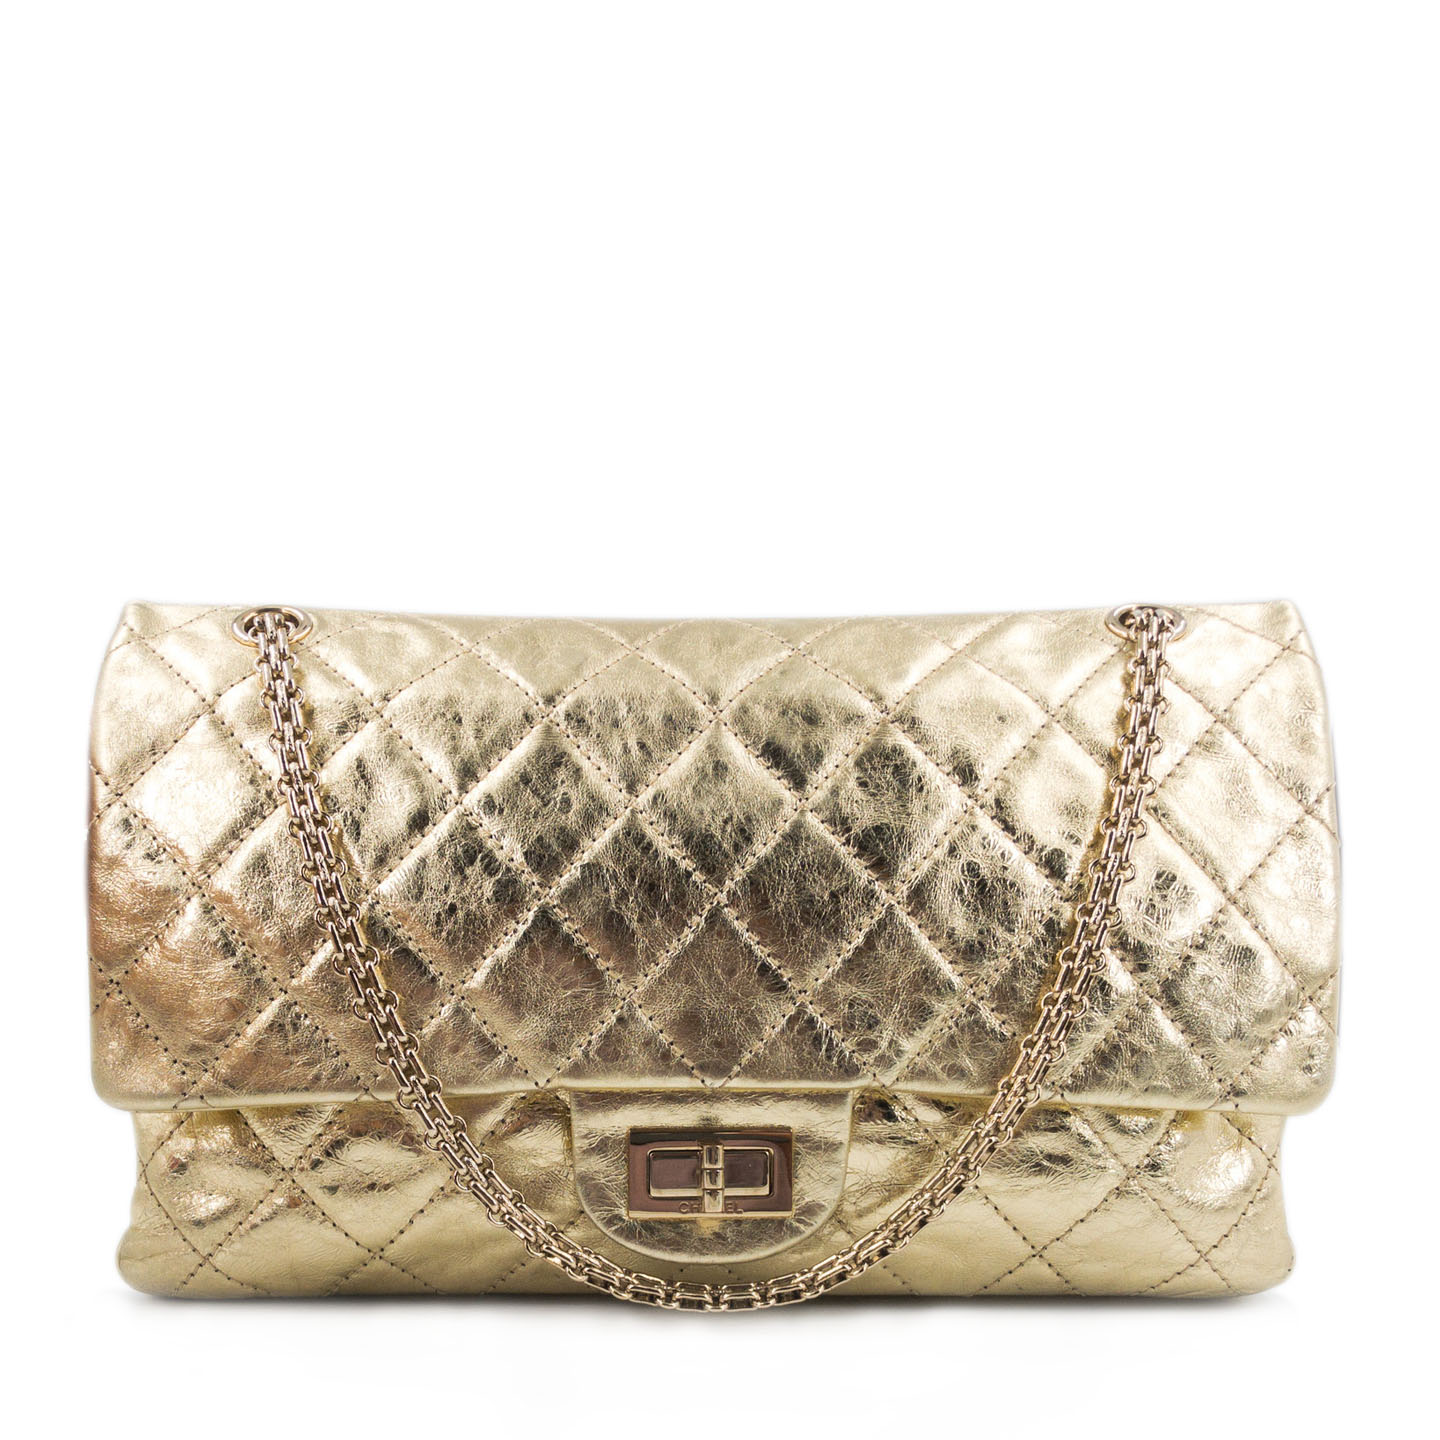 Chanel Gold Reissue 2.55 Quilted Calfskin Leather 226 Flap Bag